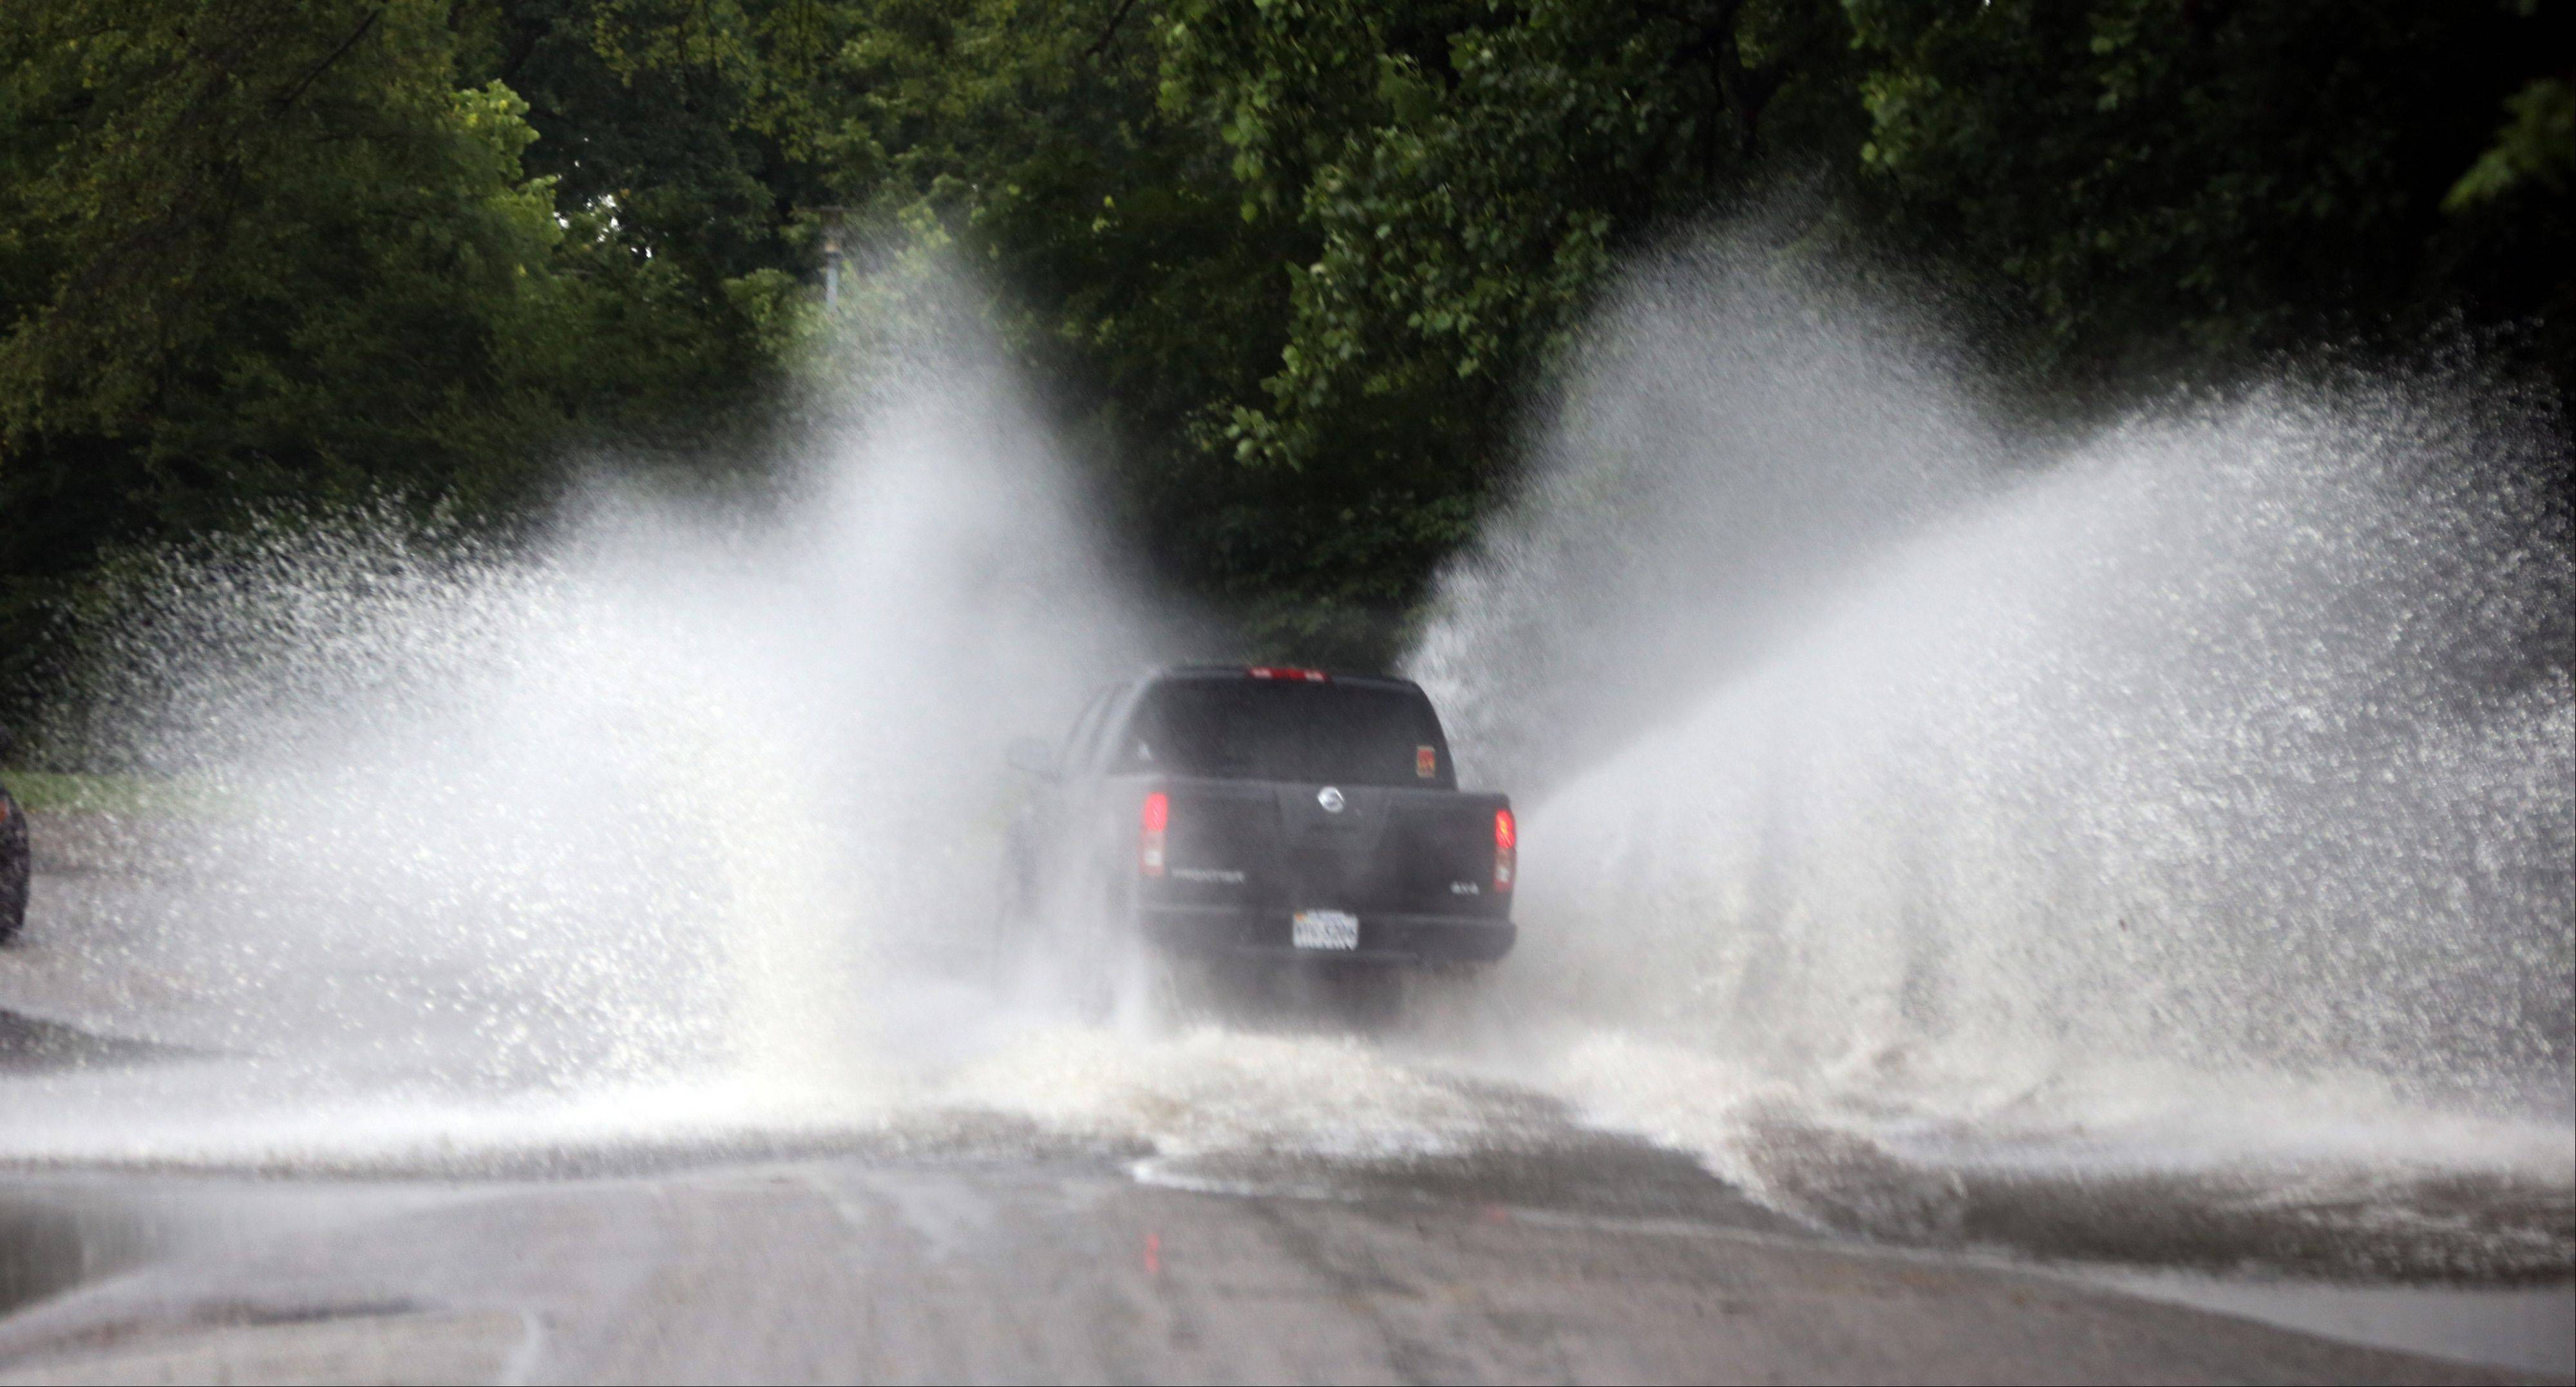 A pickup truck creates a huge splash as it drives through water on the road around Shield's Lake near the Maymont Nature Center in Richmond, Va., Thursday, June 13, 2013 after a strong line of storms moved through the area.